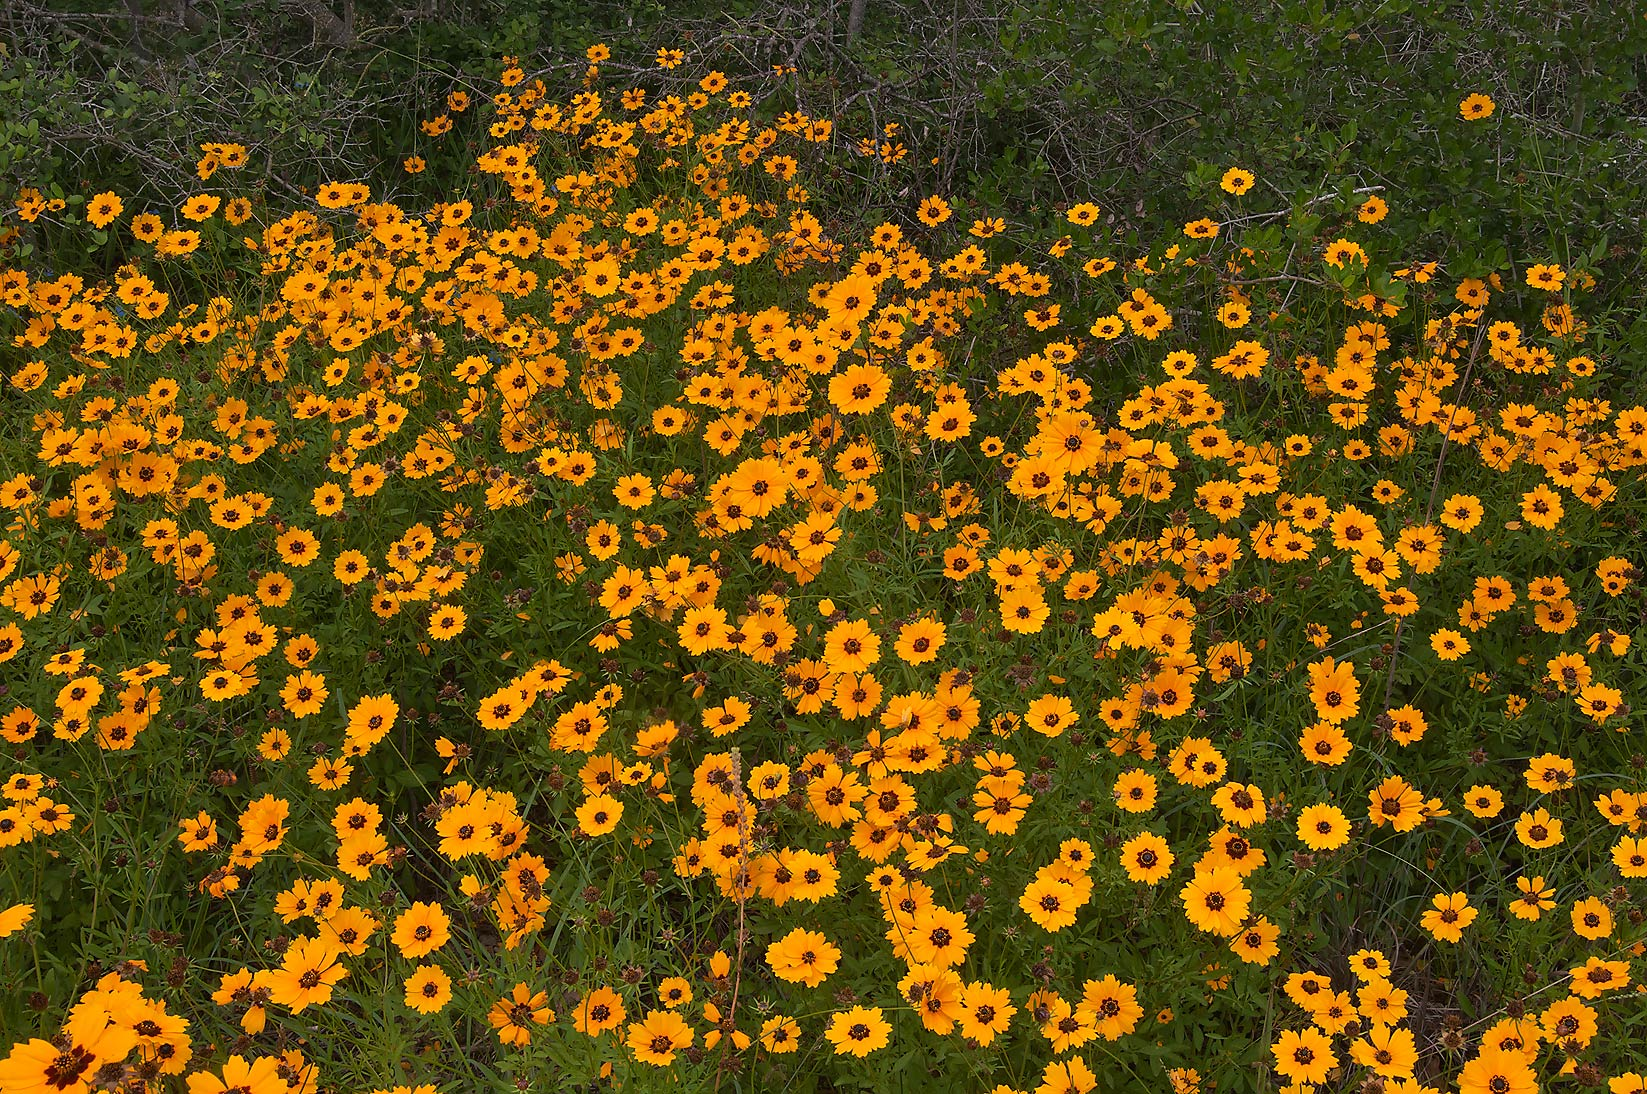 Coreopsis near bushes of Yaupon Holly in Lick Creek Park. College Station, Texas